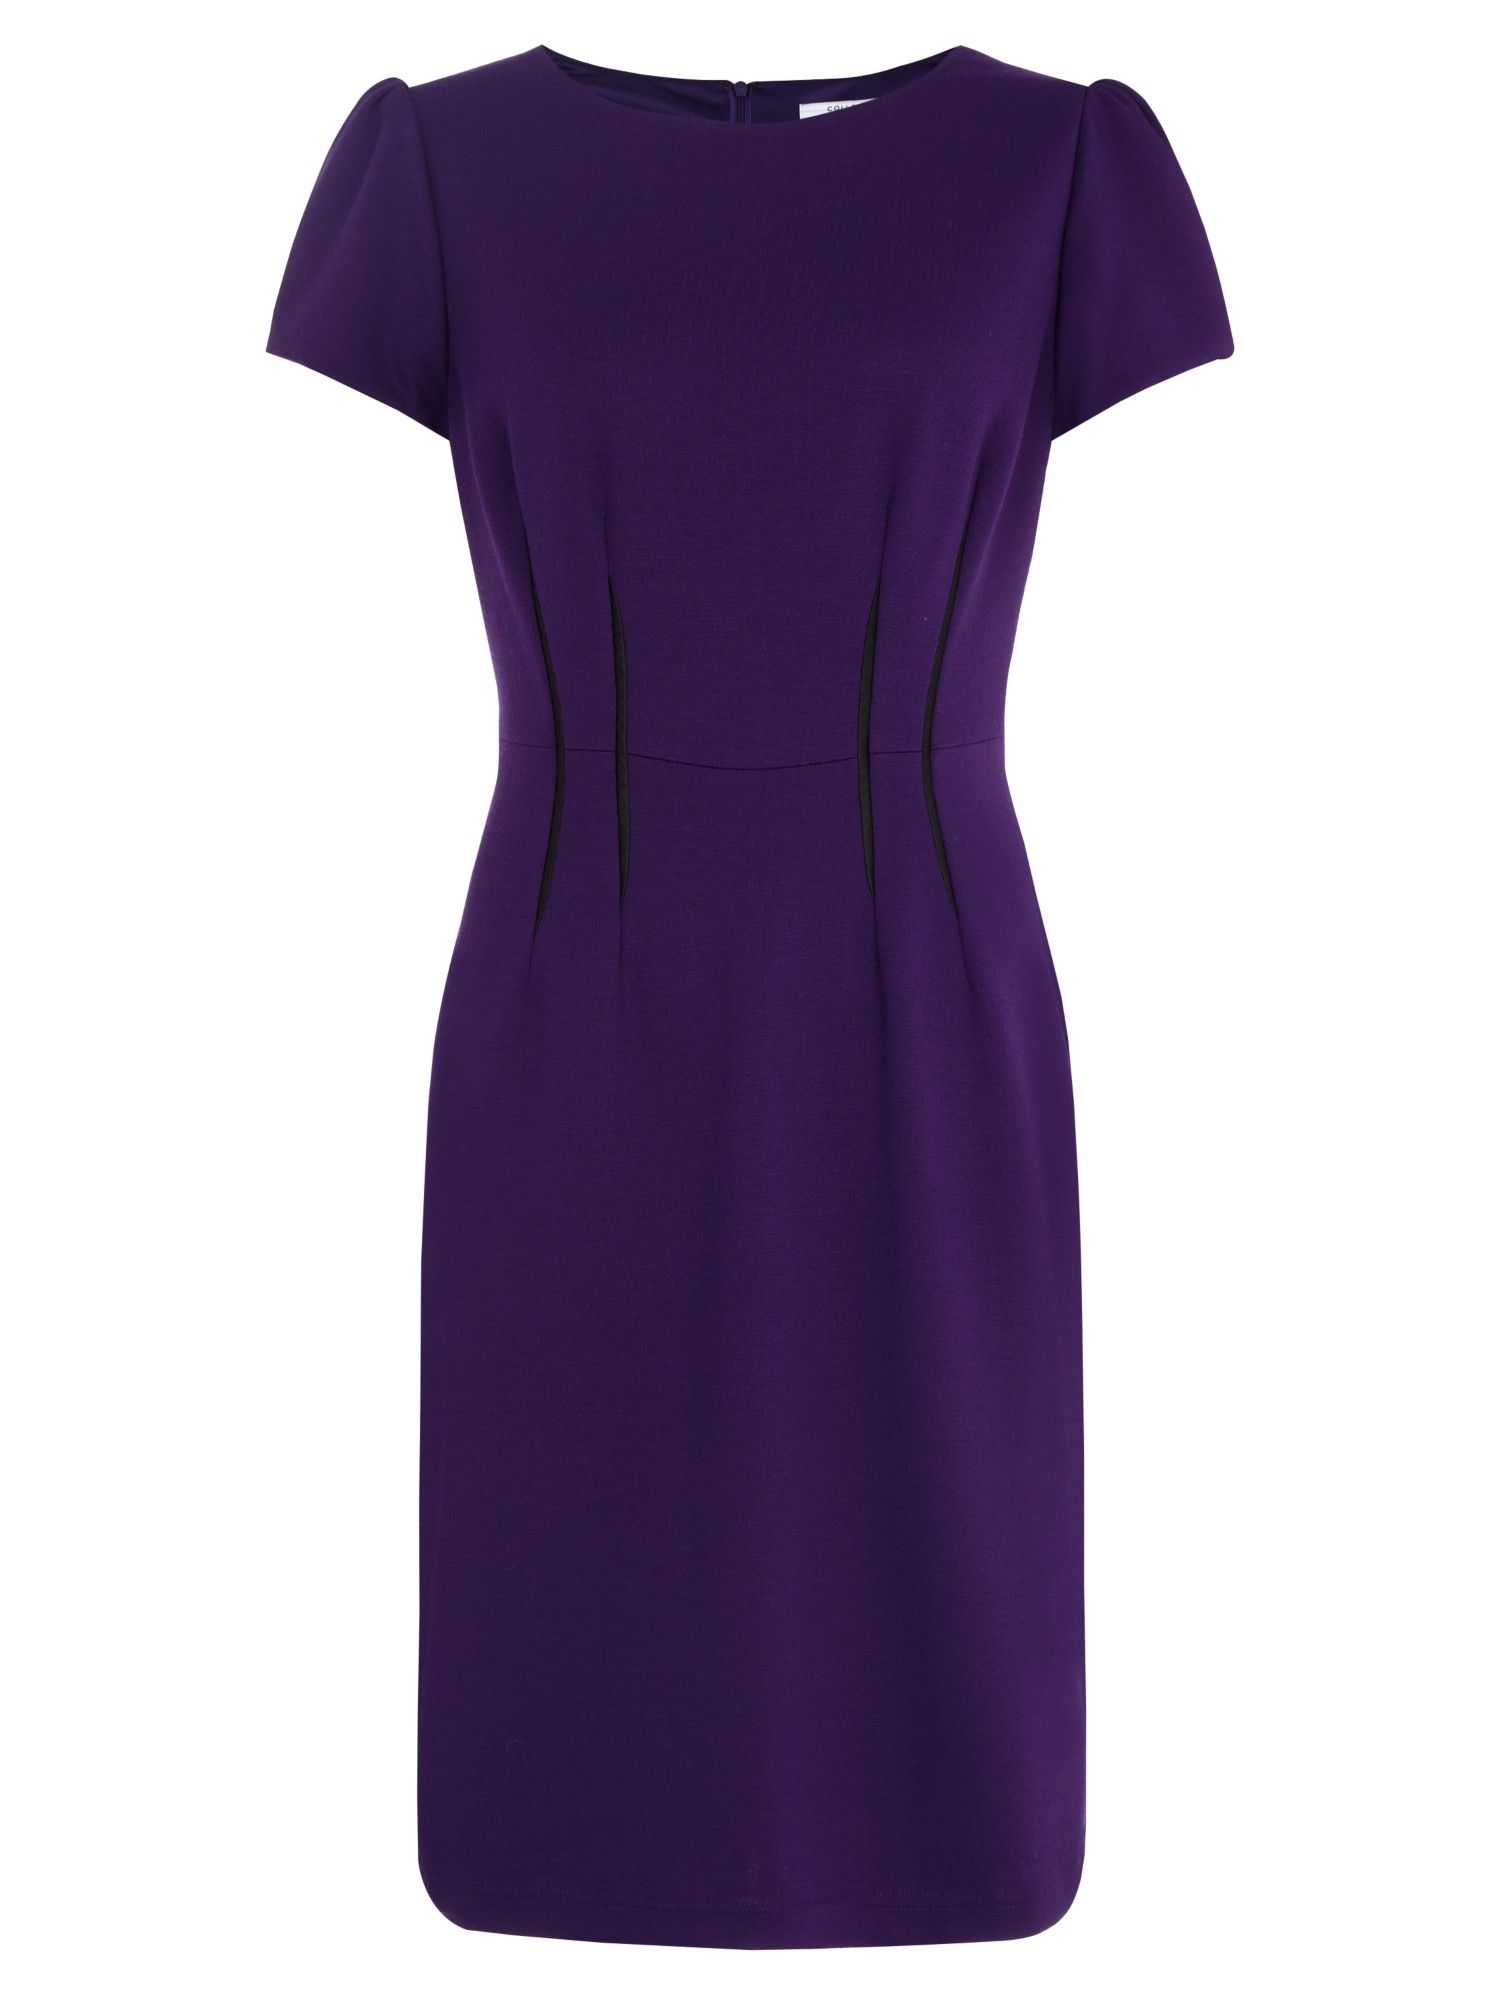 Purple Mother of the Bride Outfits & Purple Occasionwear Dresses ...